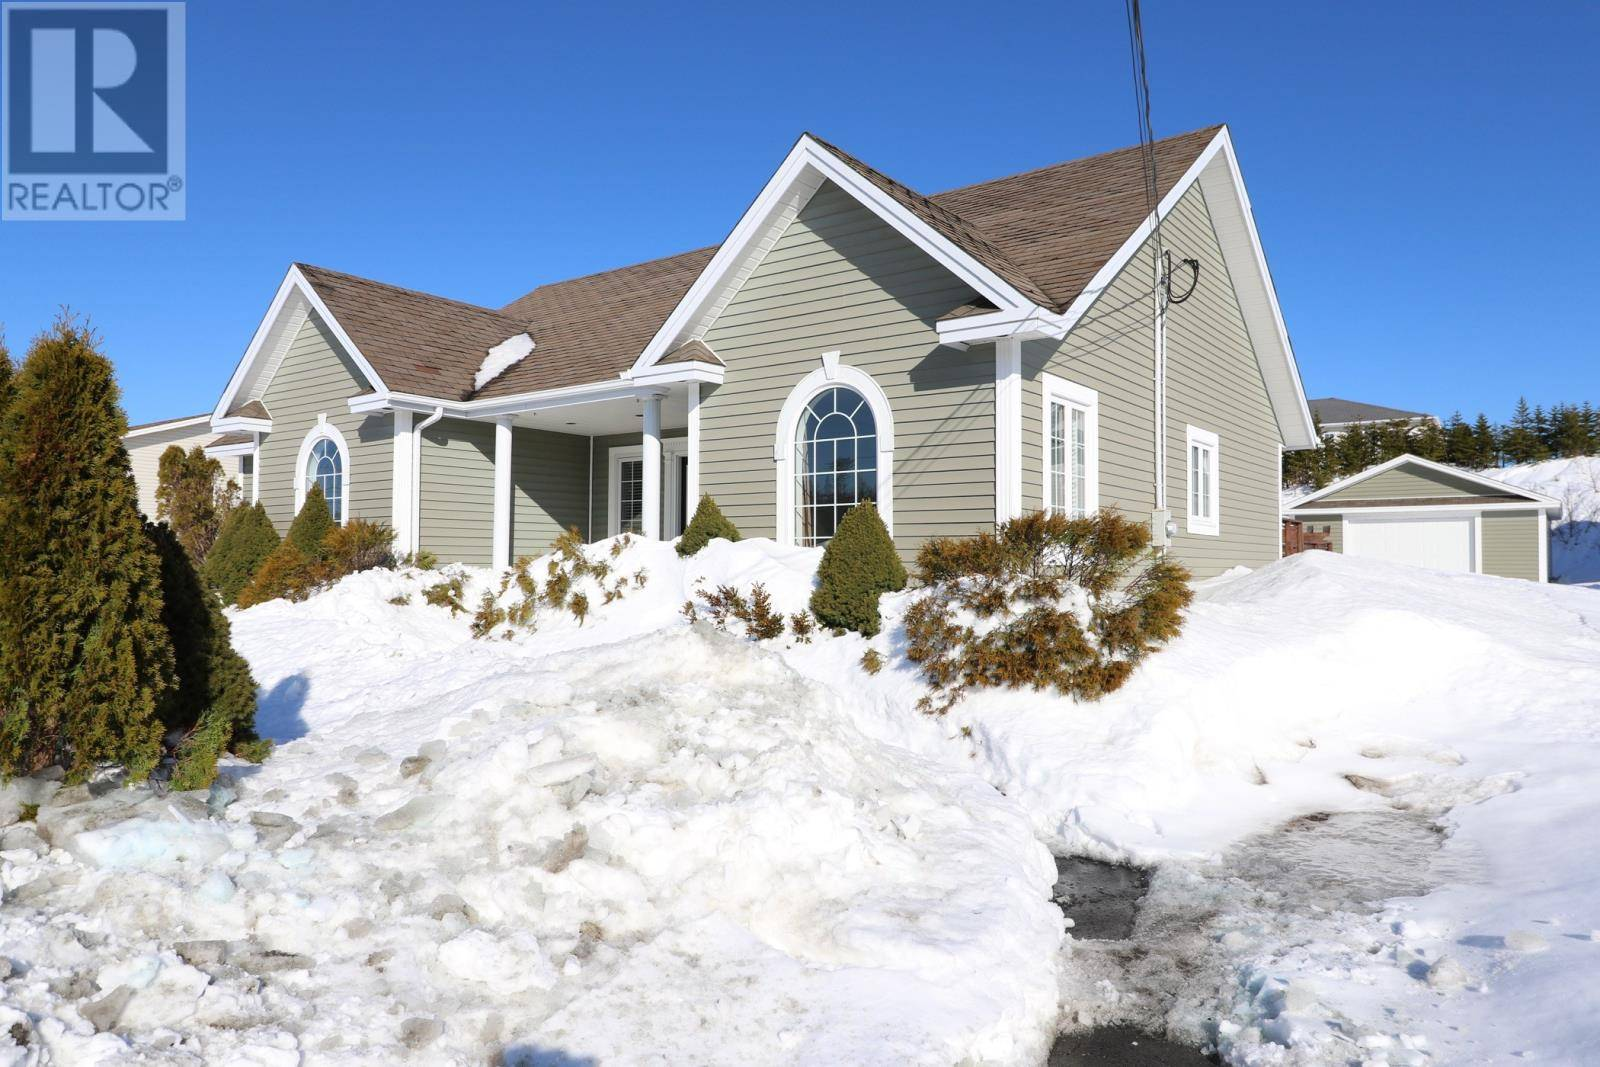 House for sale at 71 Dogberry Hill Extension Portugal Cove St. Philip's Newfoundland - MLS: 1210142